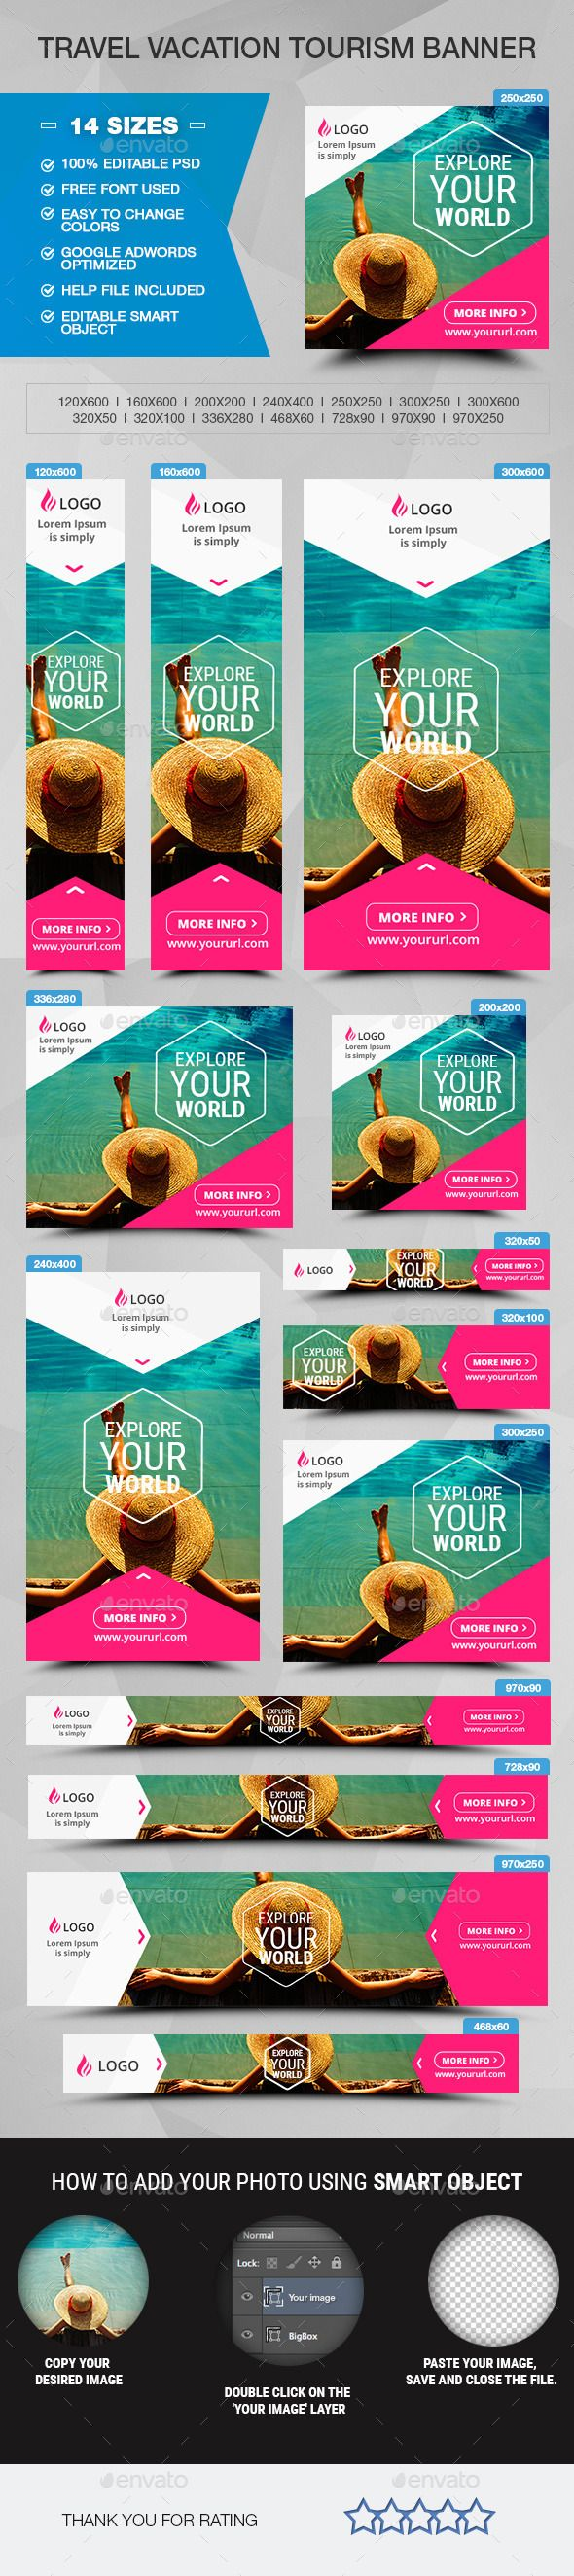 Best 25+ Web banner design ideas on Pinterest | Banner design ...